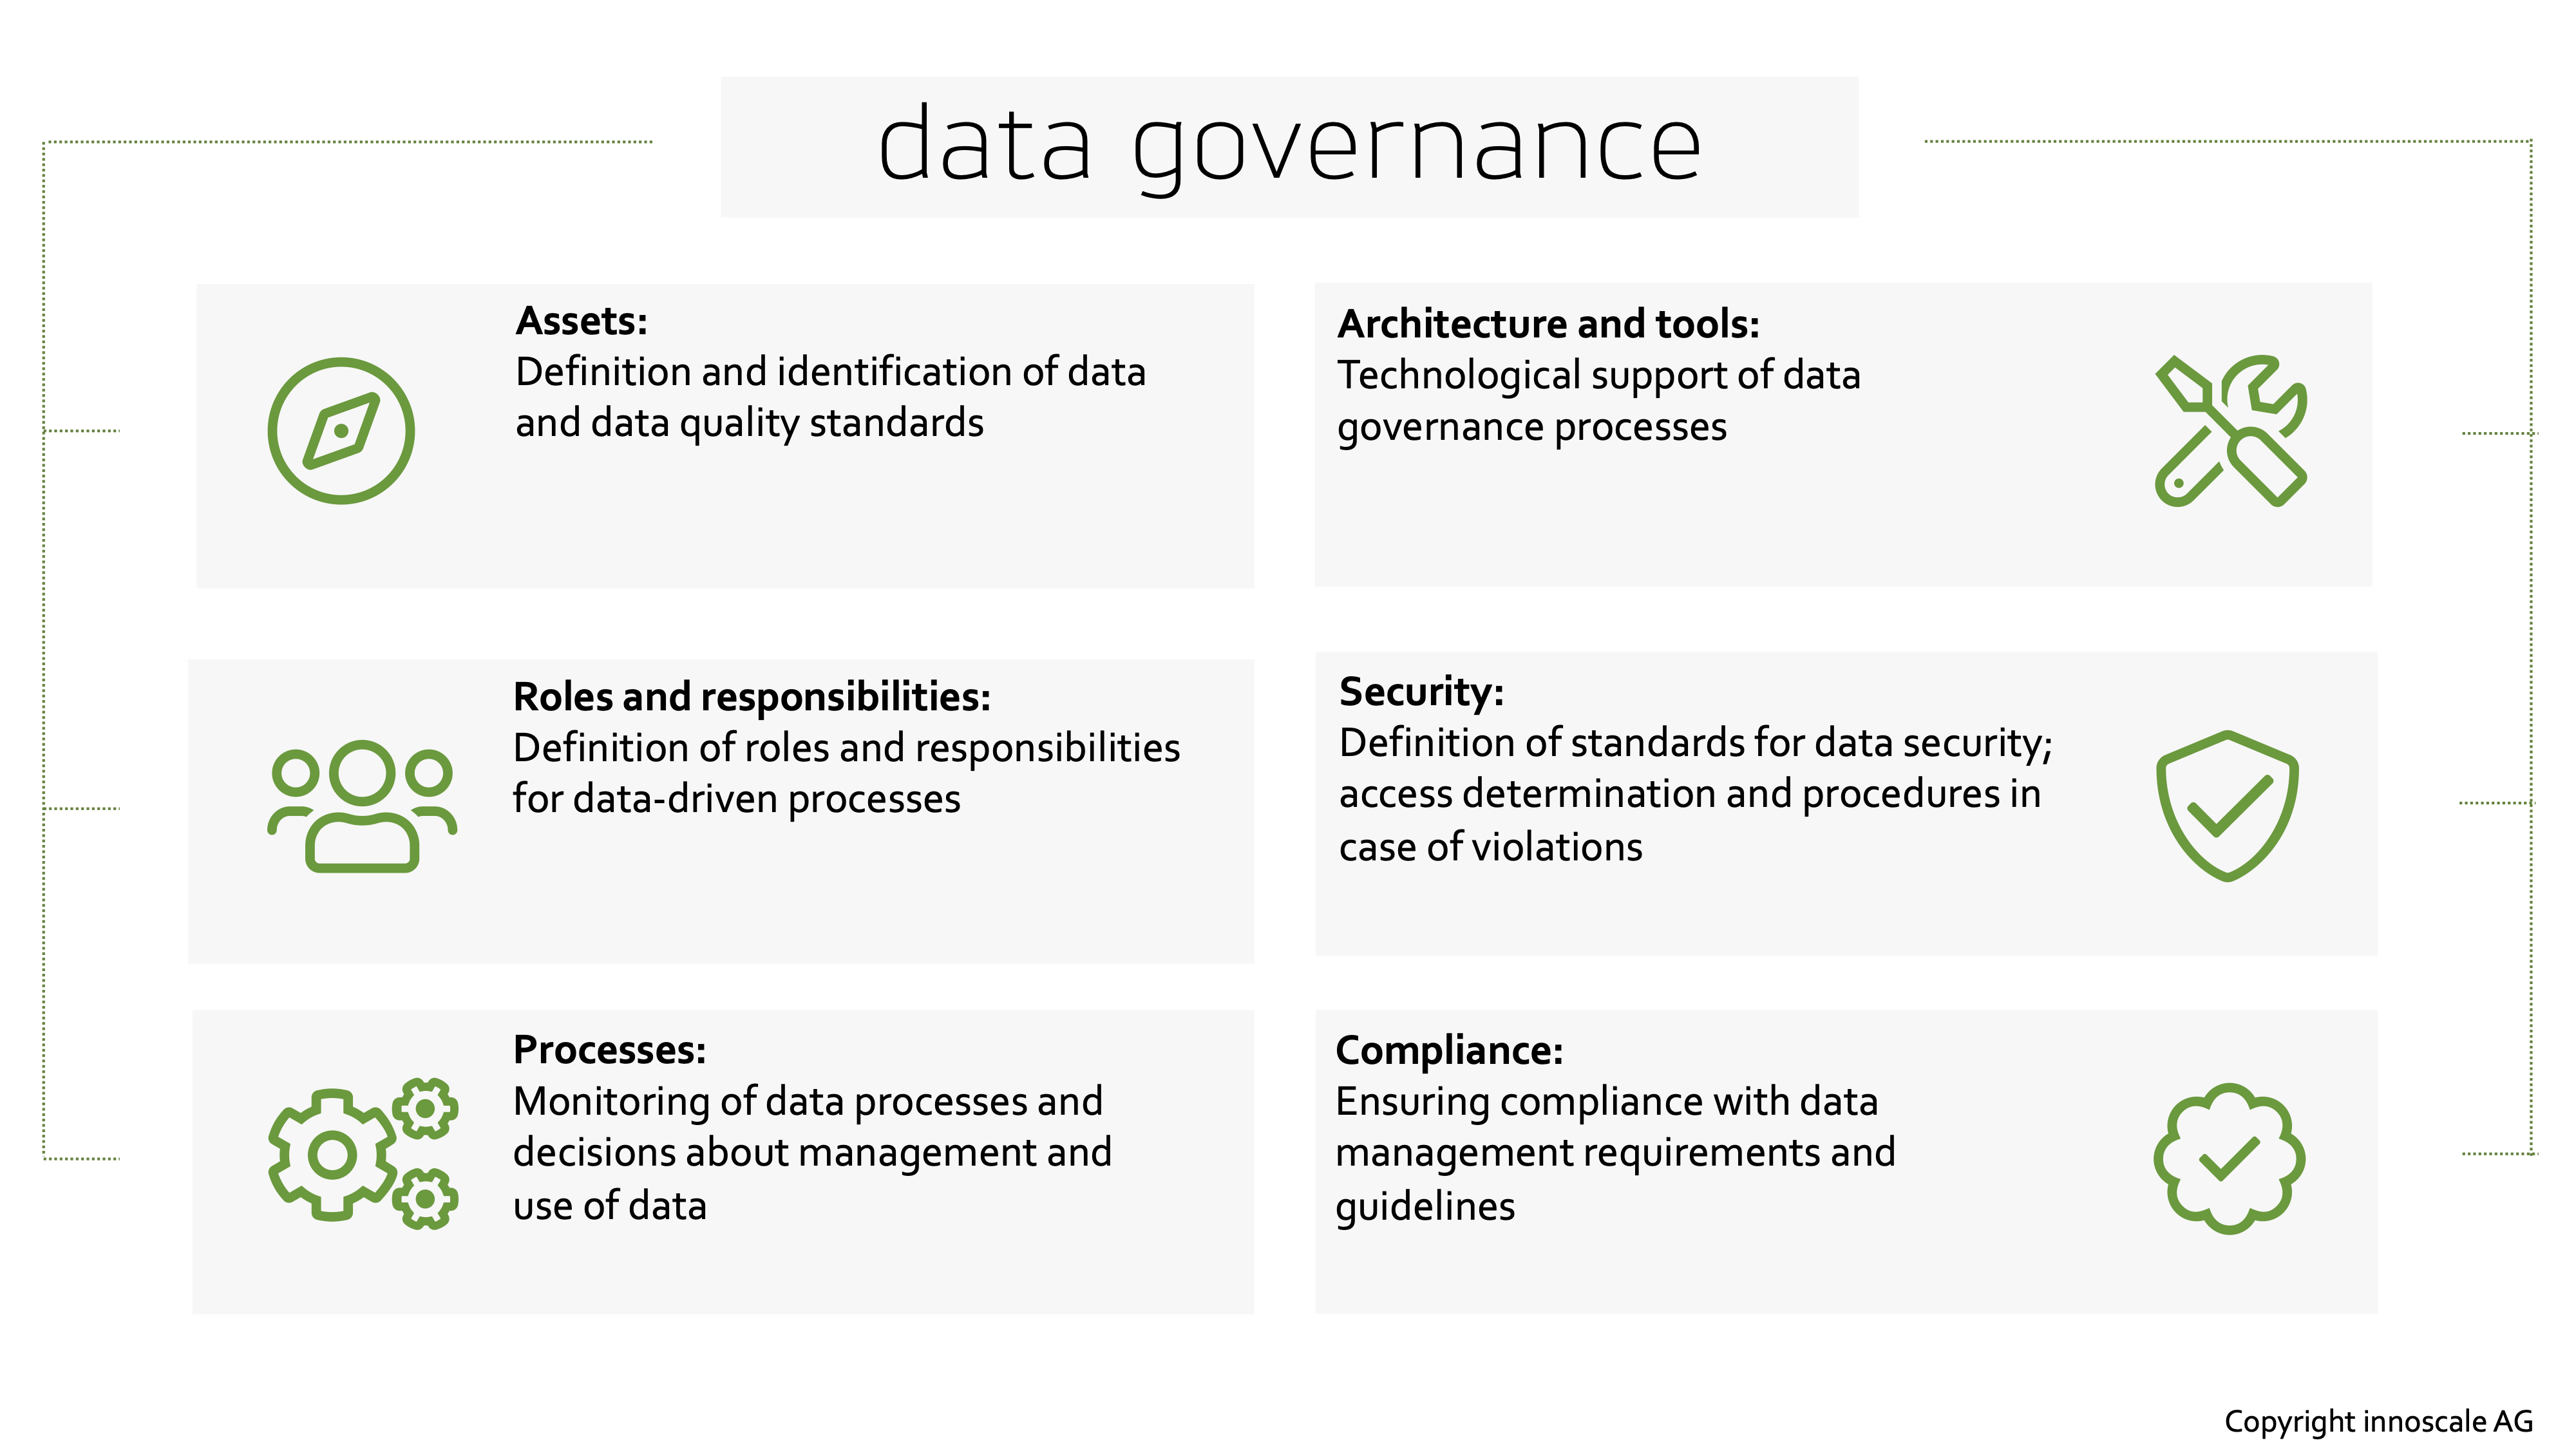 data governance       Architecture and tools: Technological support of data governance processes   Assets: Definition and identification of data and data quality standards   Security: Definition of standards for data security; access determination and procedures in case of violations   Roles and responsibilities: Definition of roles and responsibilities for data-driven processes   Compliance: Ensuring compliance with data management requirements and guidelines   Processes: Monitoring of data processes and decisions about management and use of data  Copyright innoscale AG    Data governance processes with DataRocket  Real-time transmission Data sets are transferred to the leading target systems in a very performant and efficient way.   Web-based input forms The use of existing value lists from source systems and upload of own value lists is possible.   System open To integrate data governance into the existing system landscape, workflows can be accessed via a link on the Web.   User-friendly Users receive automated notifications when workflows are assigned to them.   Quality management DataRocket acts as a quality gateway in the data governance process.   Clarity The process cockpit provides an overview of the workflows to be processed. Workflows can be assigned and monitored there.  Copyright innoscale AG